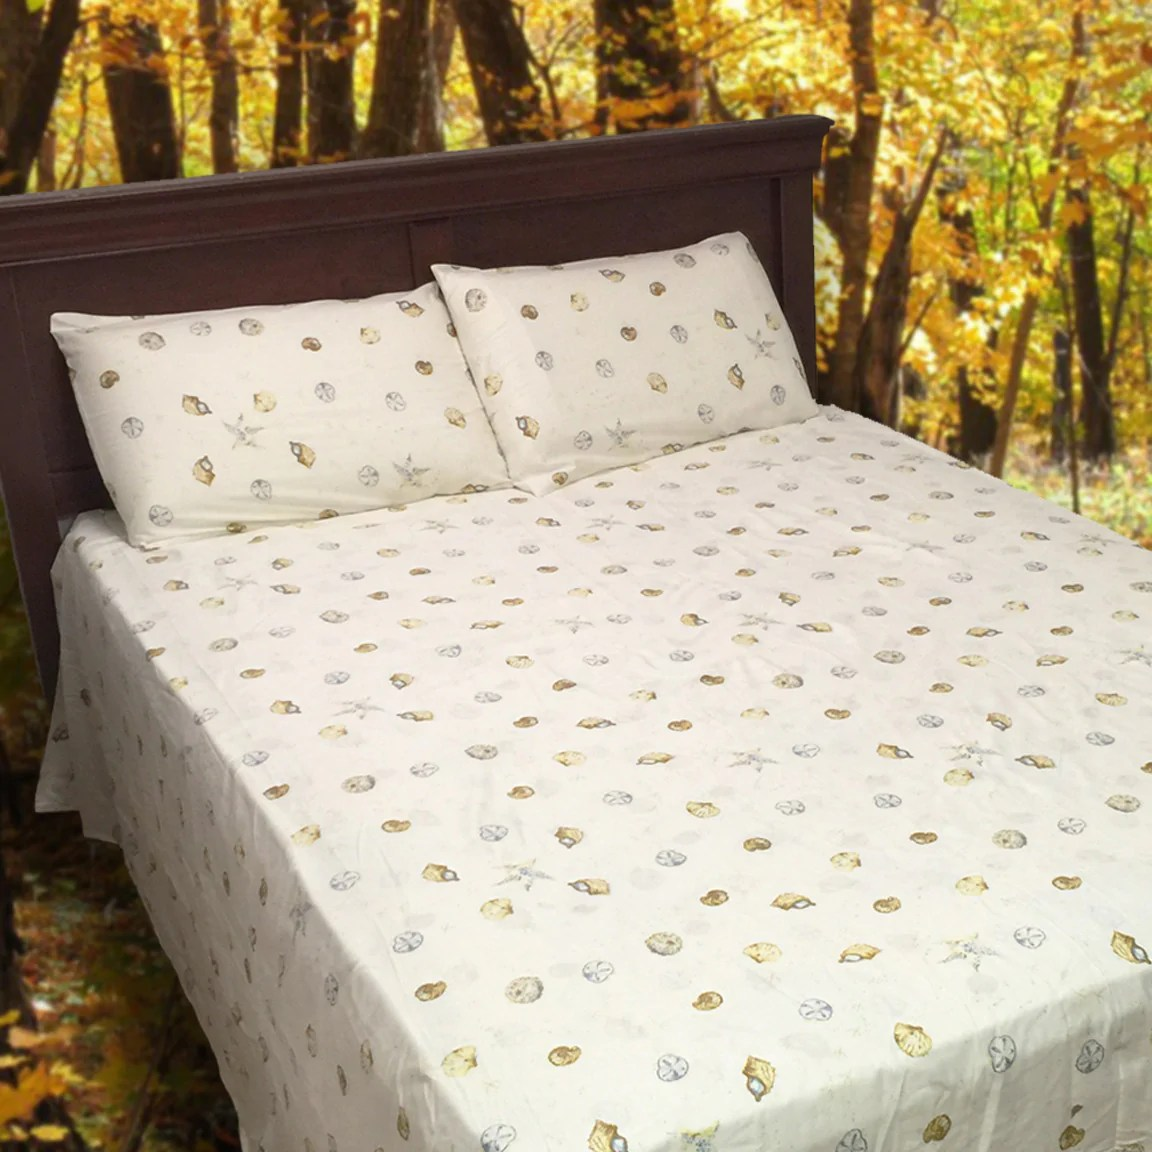 Cotton Bed Linen Sale Clearance